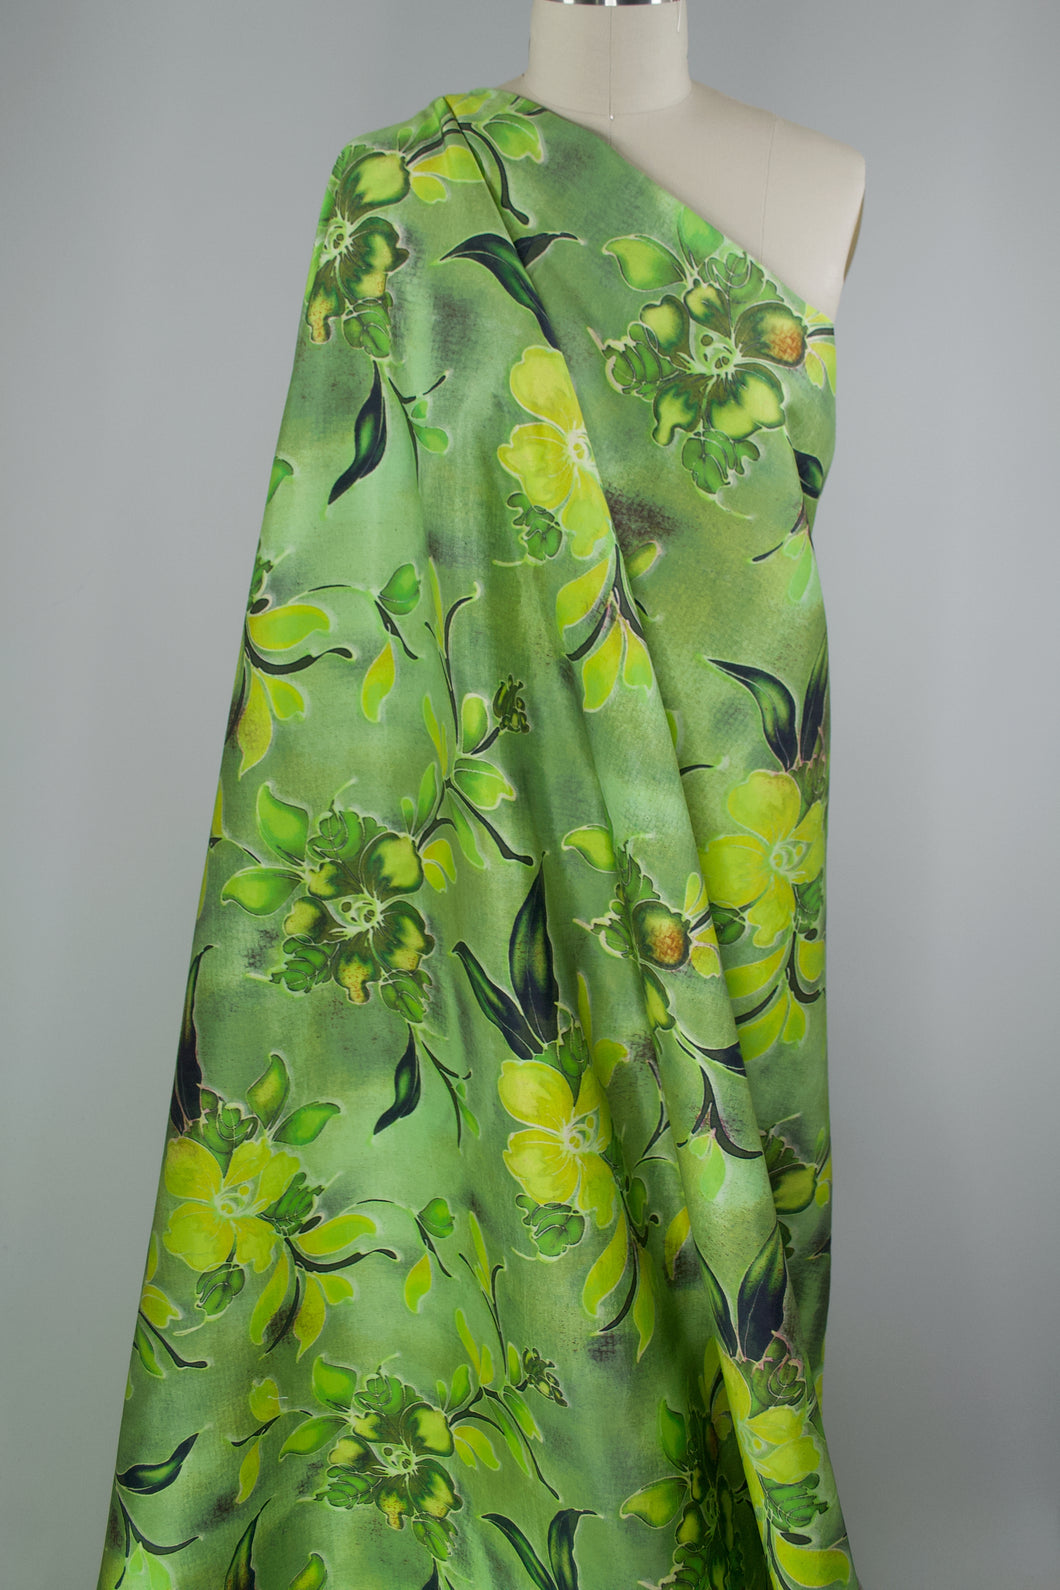 Limeade Spanish Floral Silk Twill - Greens/Yellows